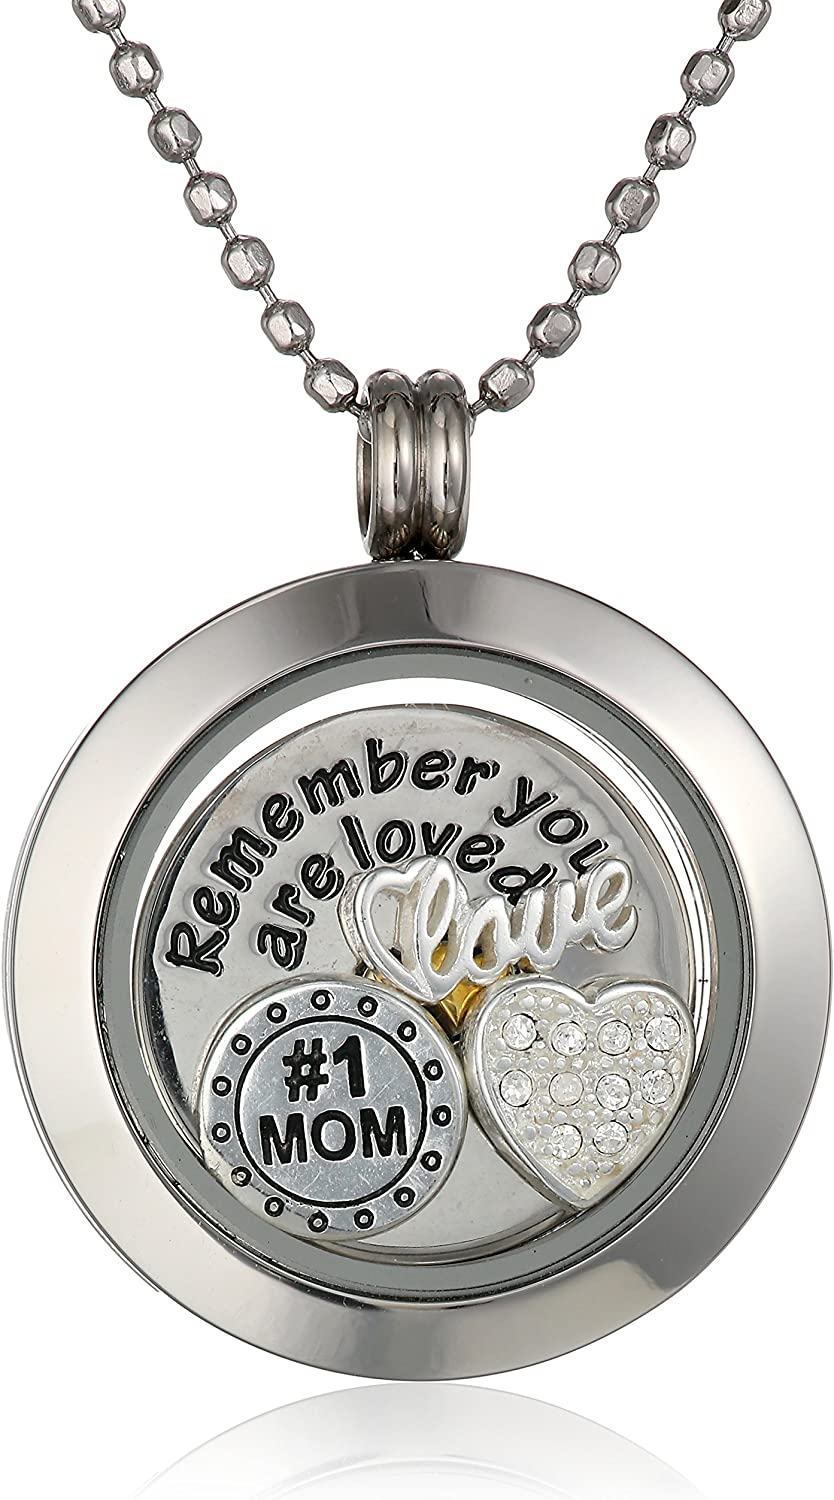 Charmed Lockets Mom You Are Loved Pendant Necklace, 24""